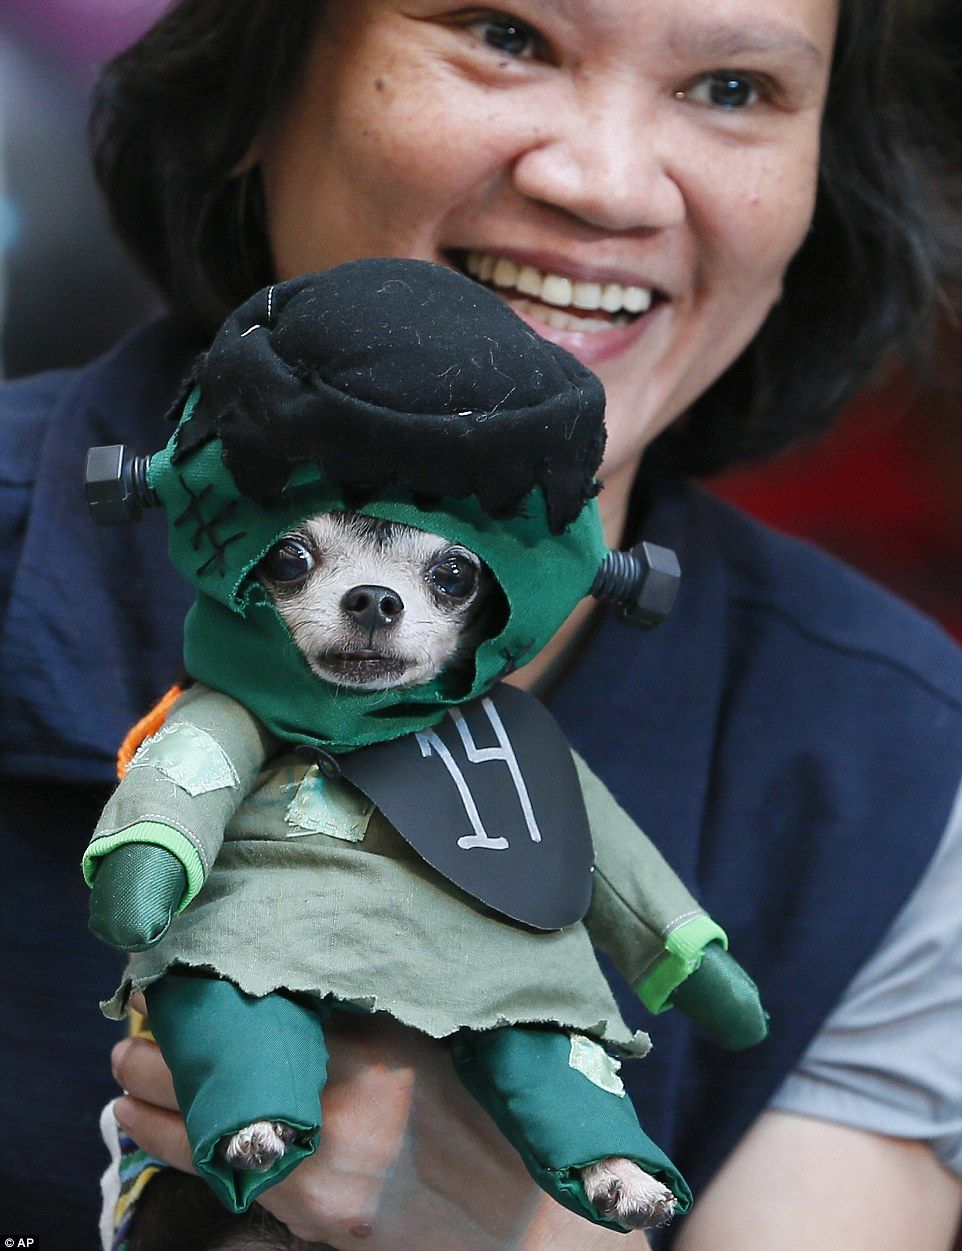 Dogs Dressed Up For Halloween Fashion Show In The Philippines